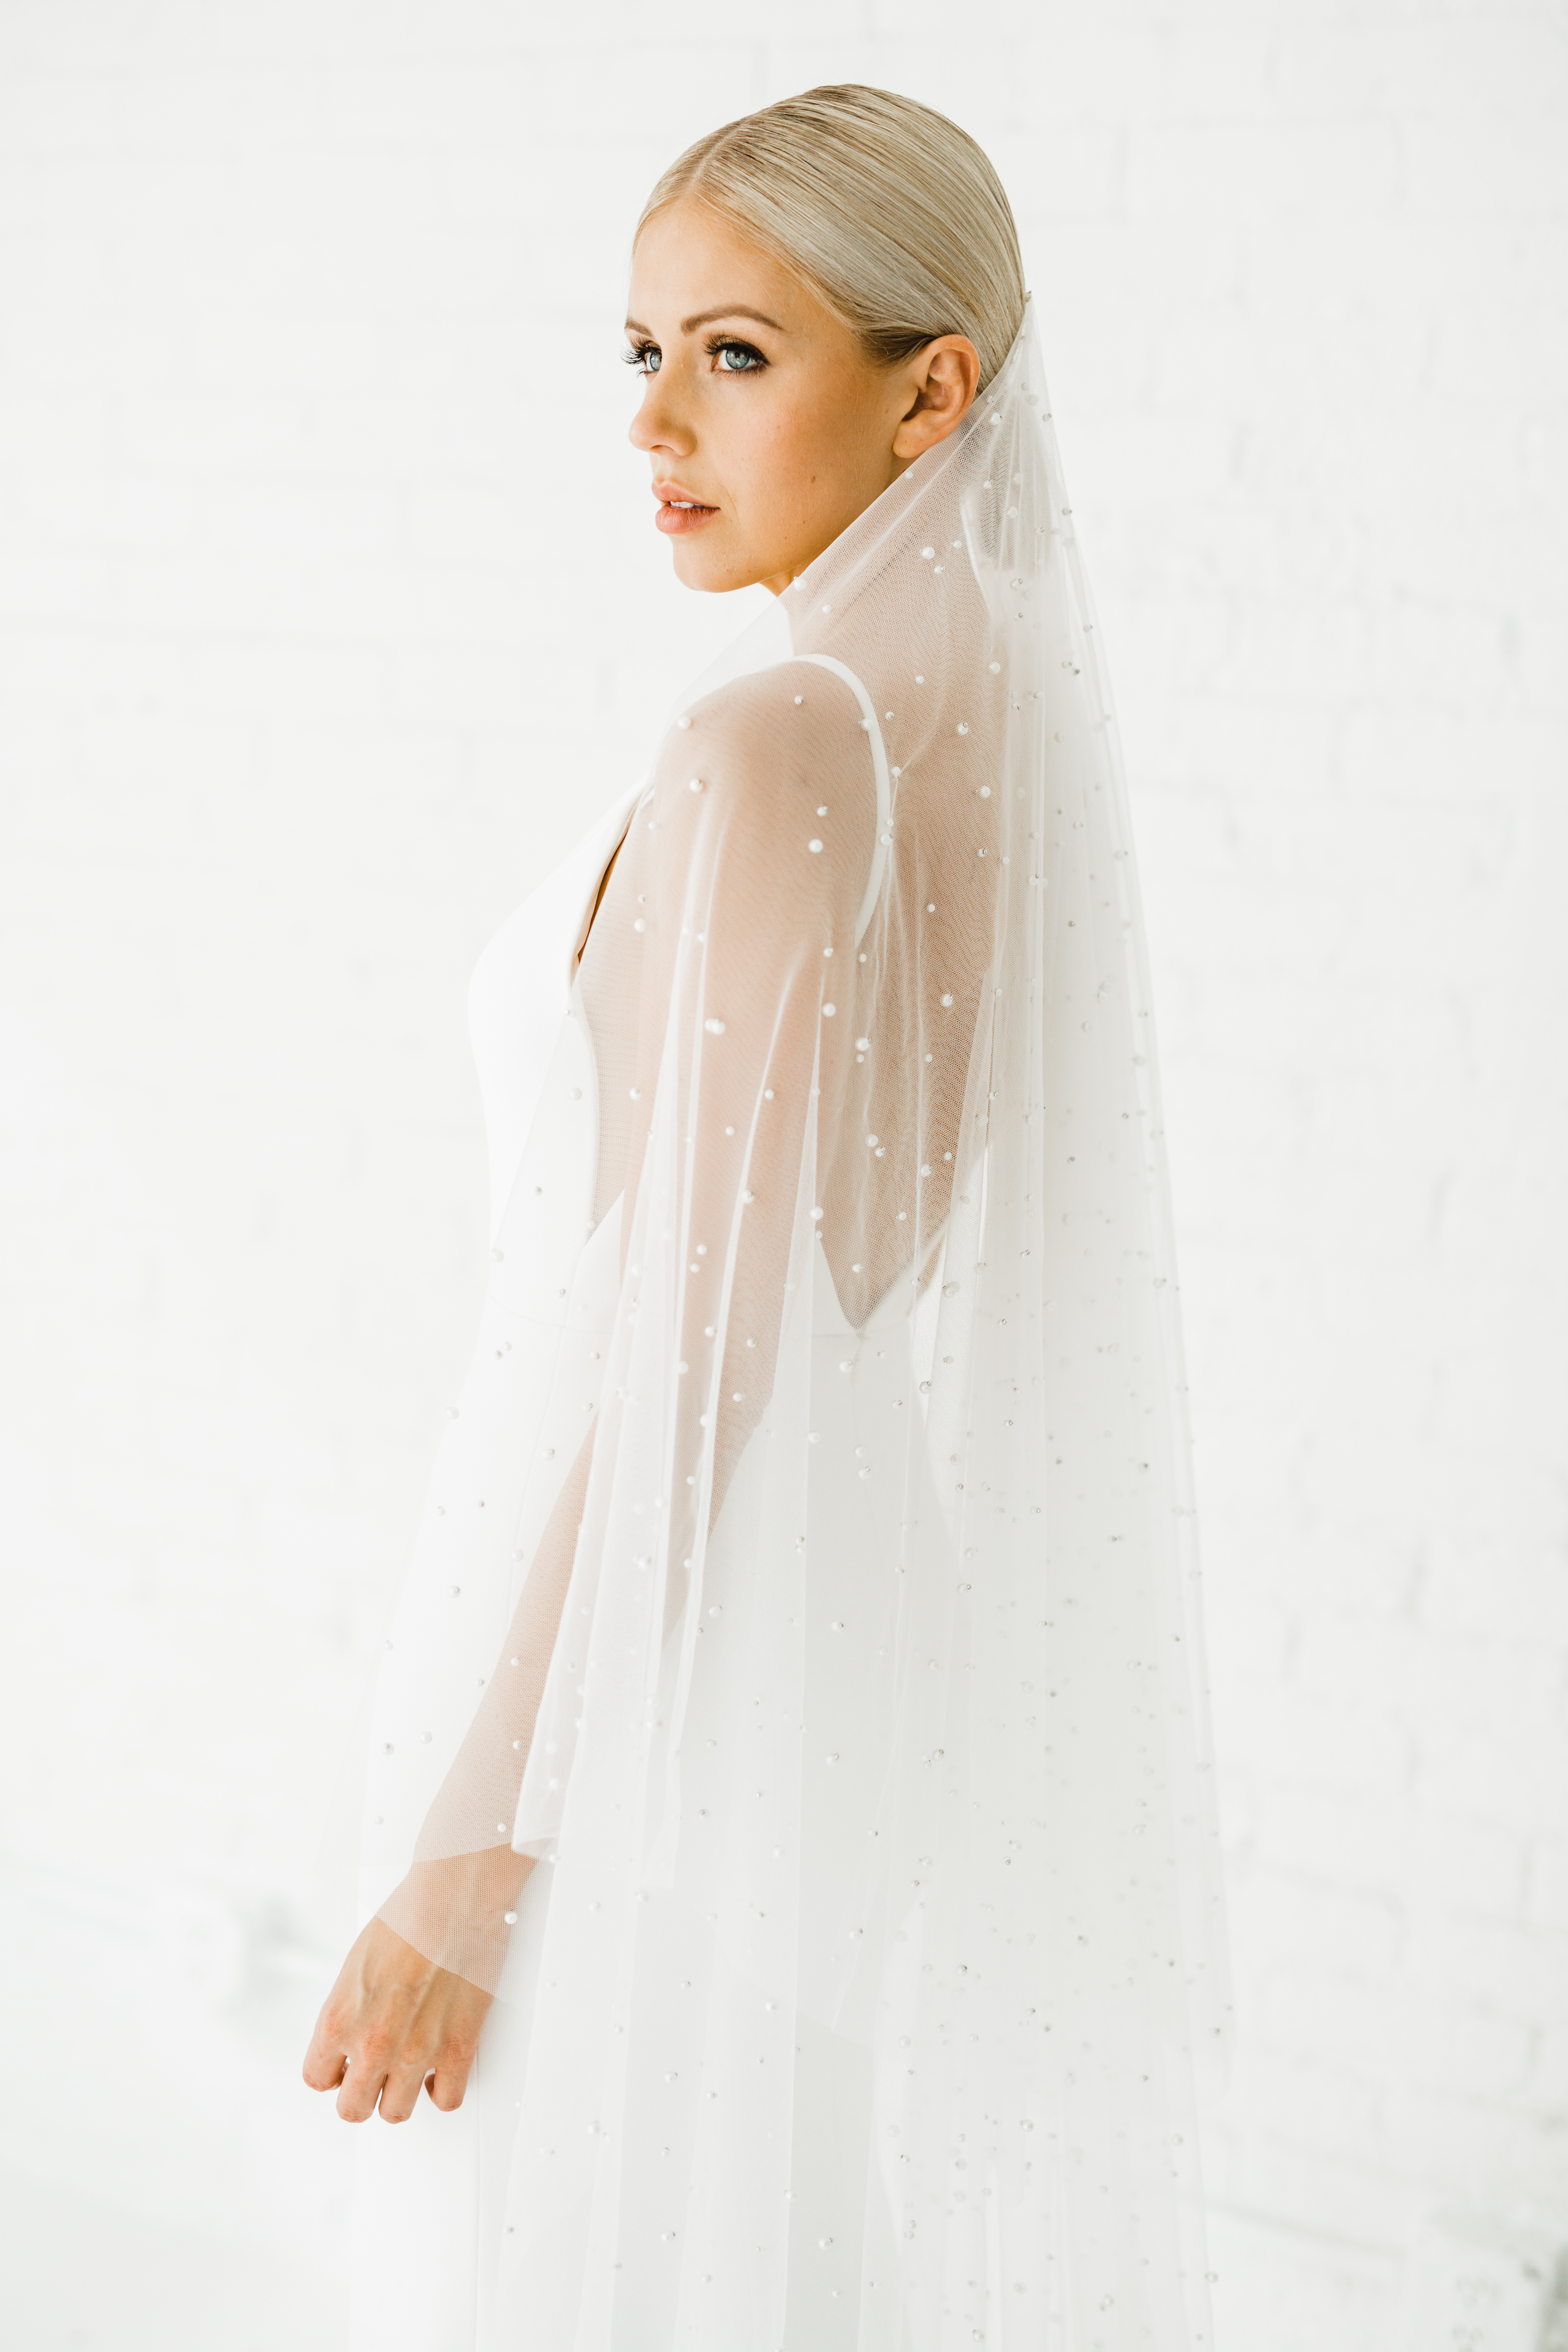 bride wearing pearl-studded veil